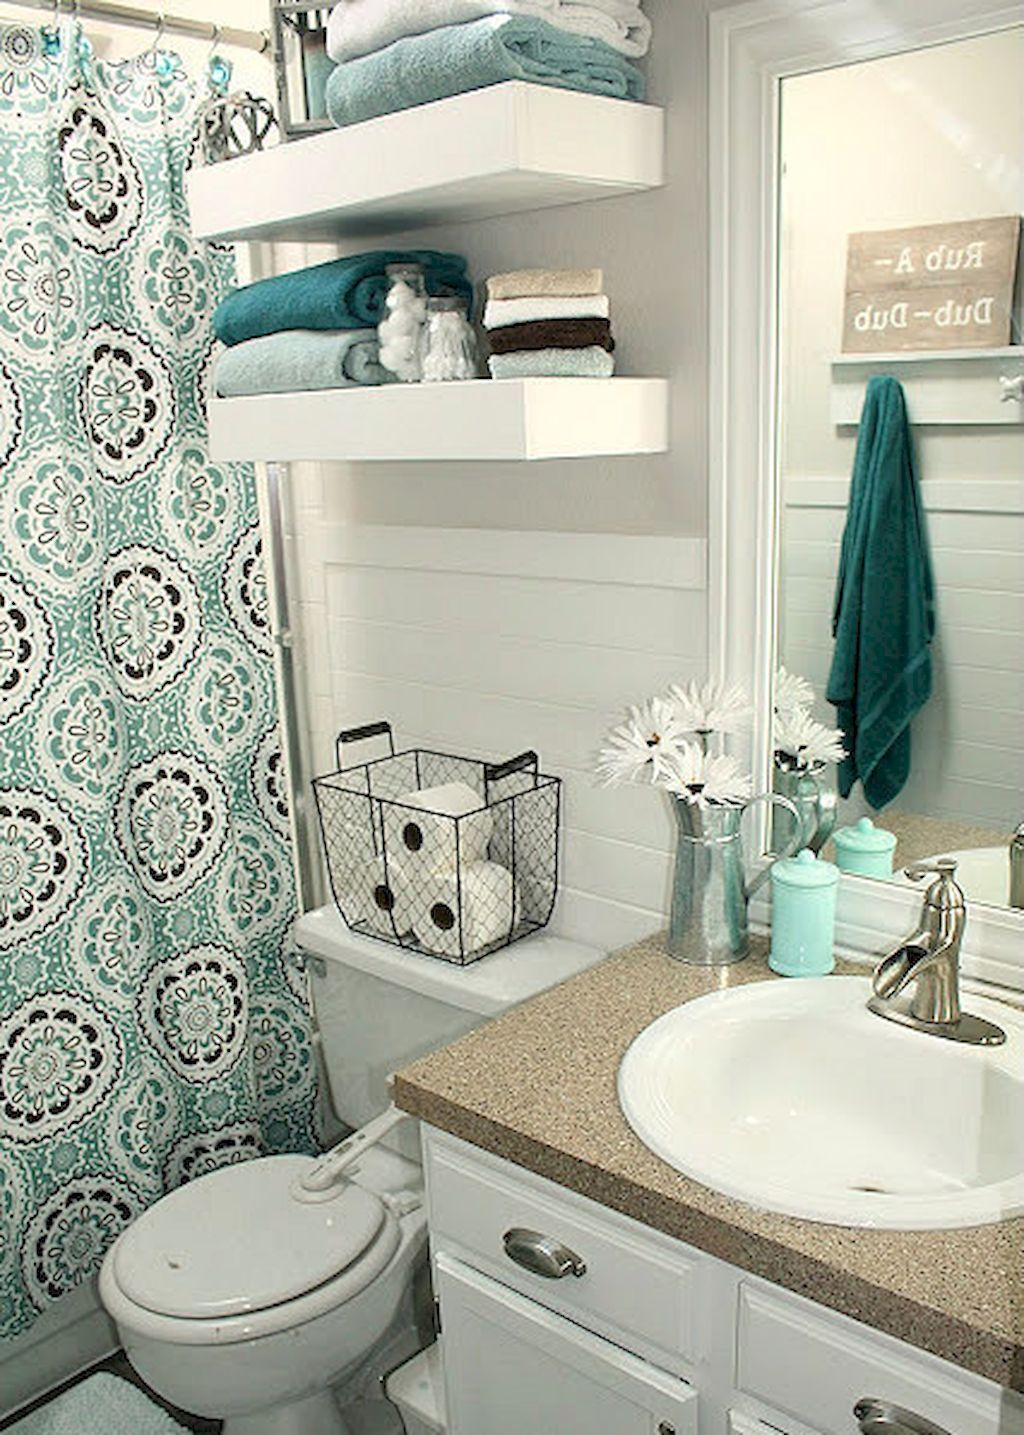 Decorating An Apartment In Budget In 2020 Small Bathroom Decor Diy Small Apartment Diy Apartment Decor